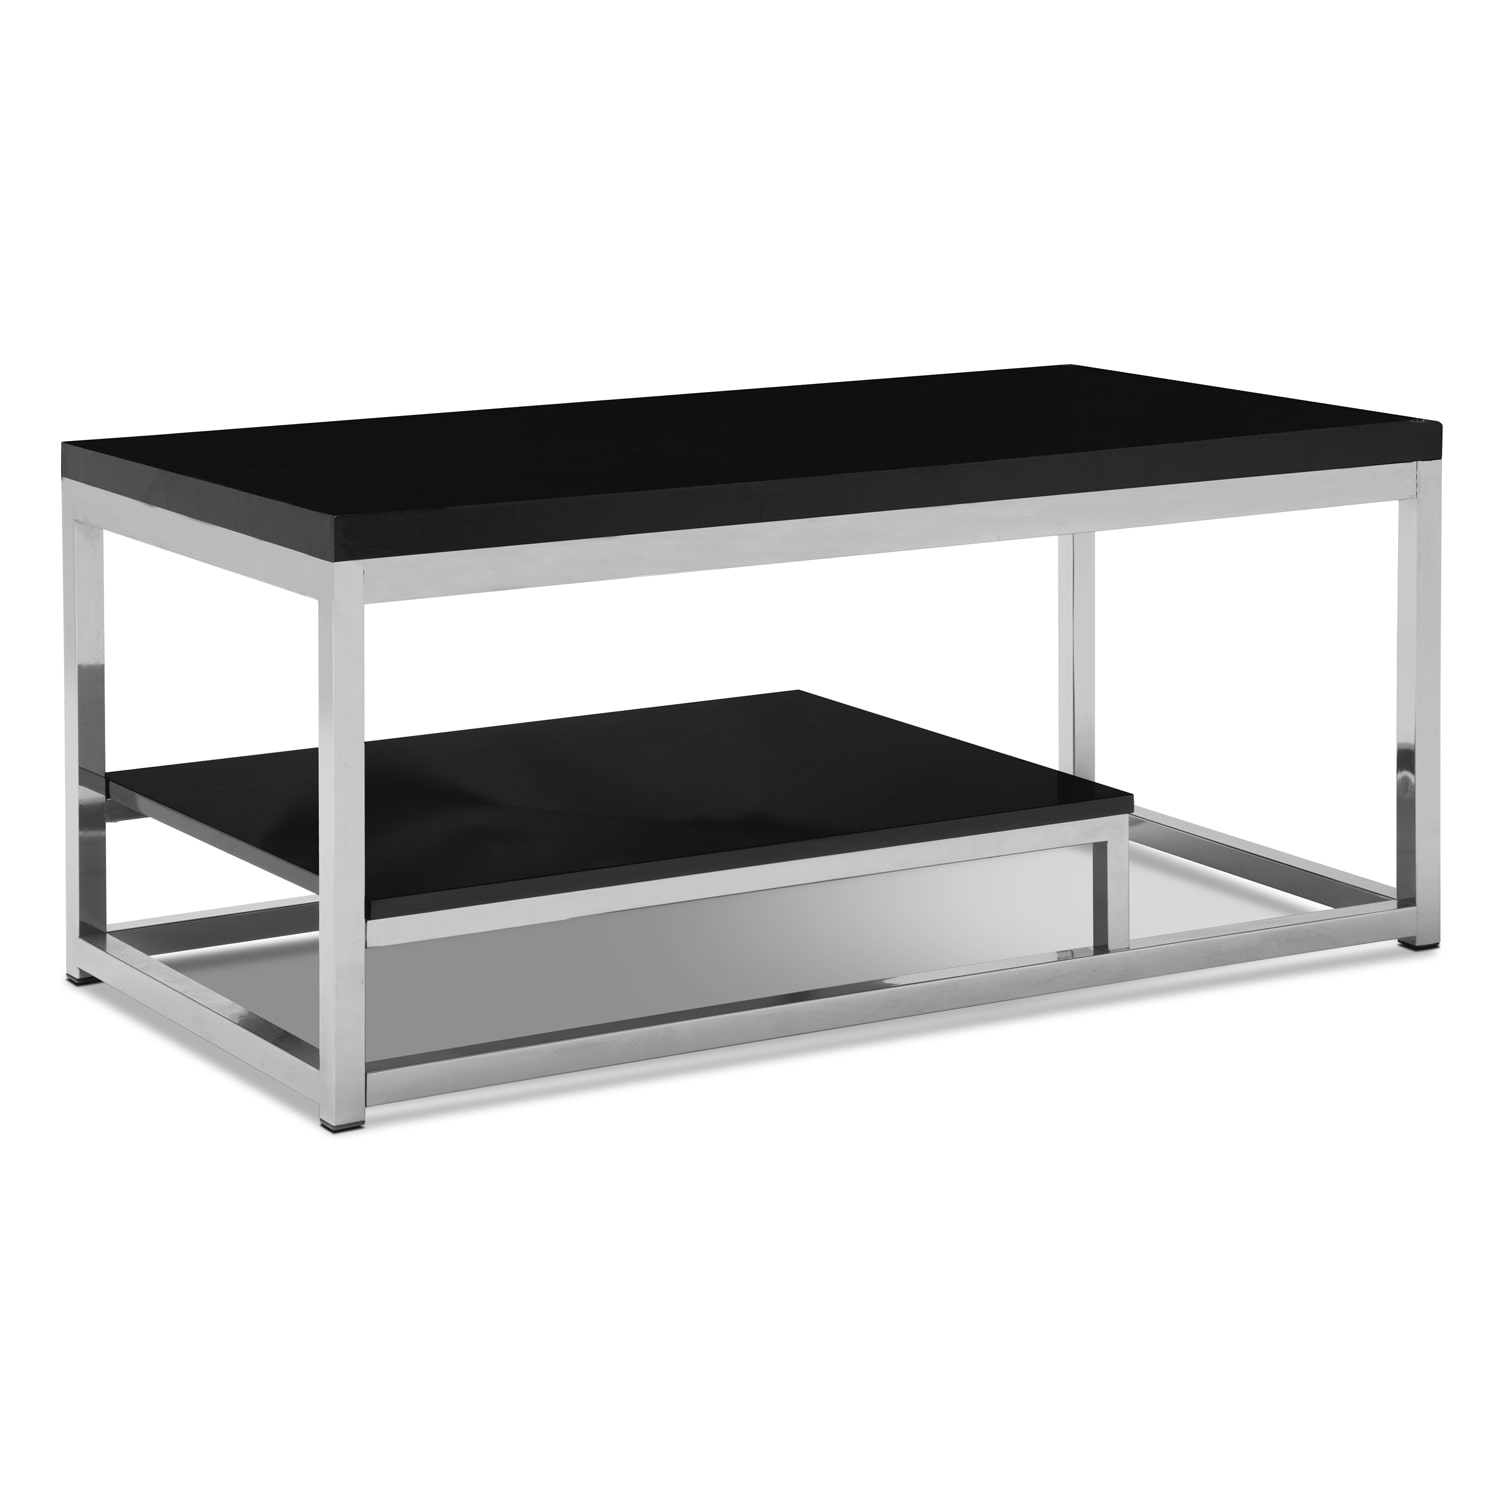 American Signature Furniture Cielo Occasional Tables Cocktail Table